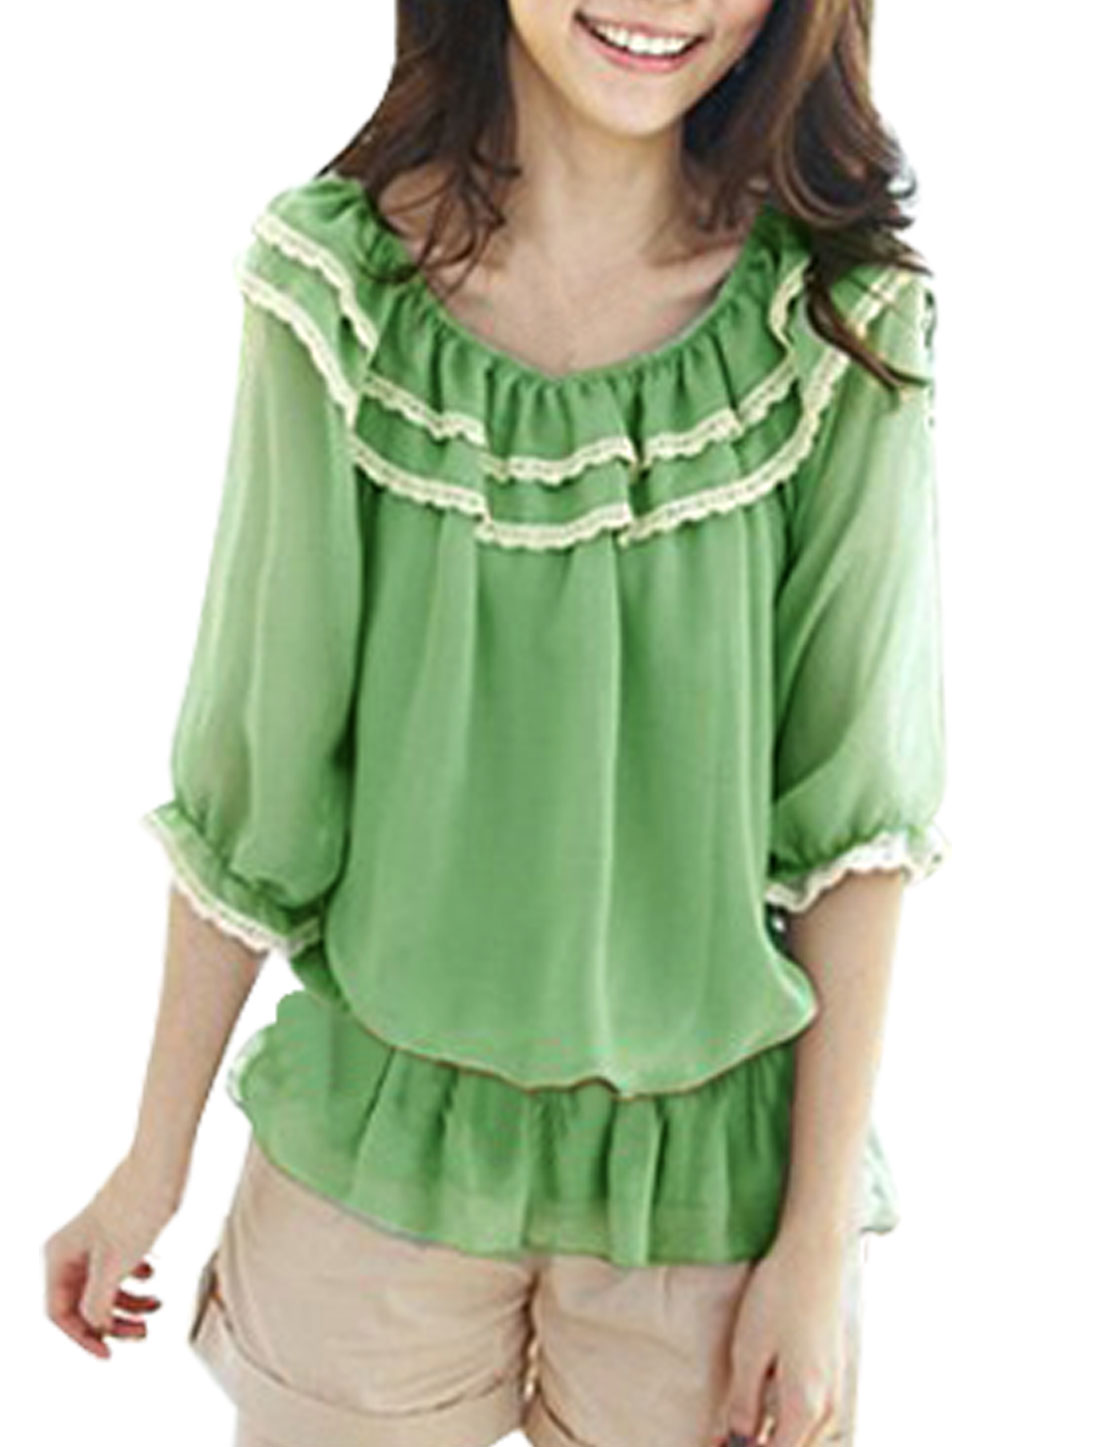 Green Layered Collar Chiffon Half Sleeve Blouse XS for Women